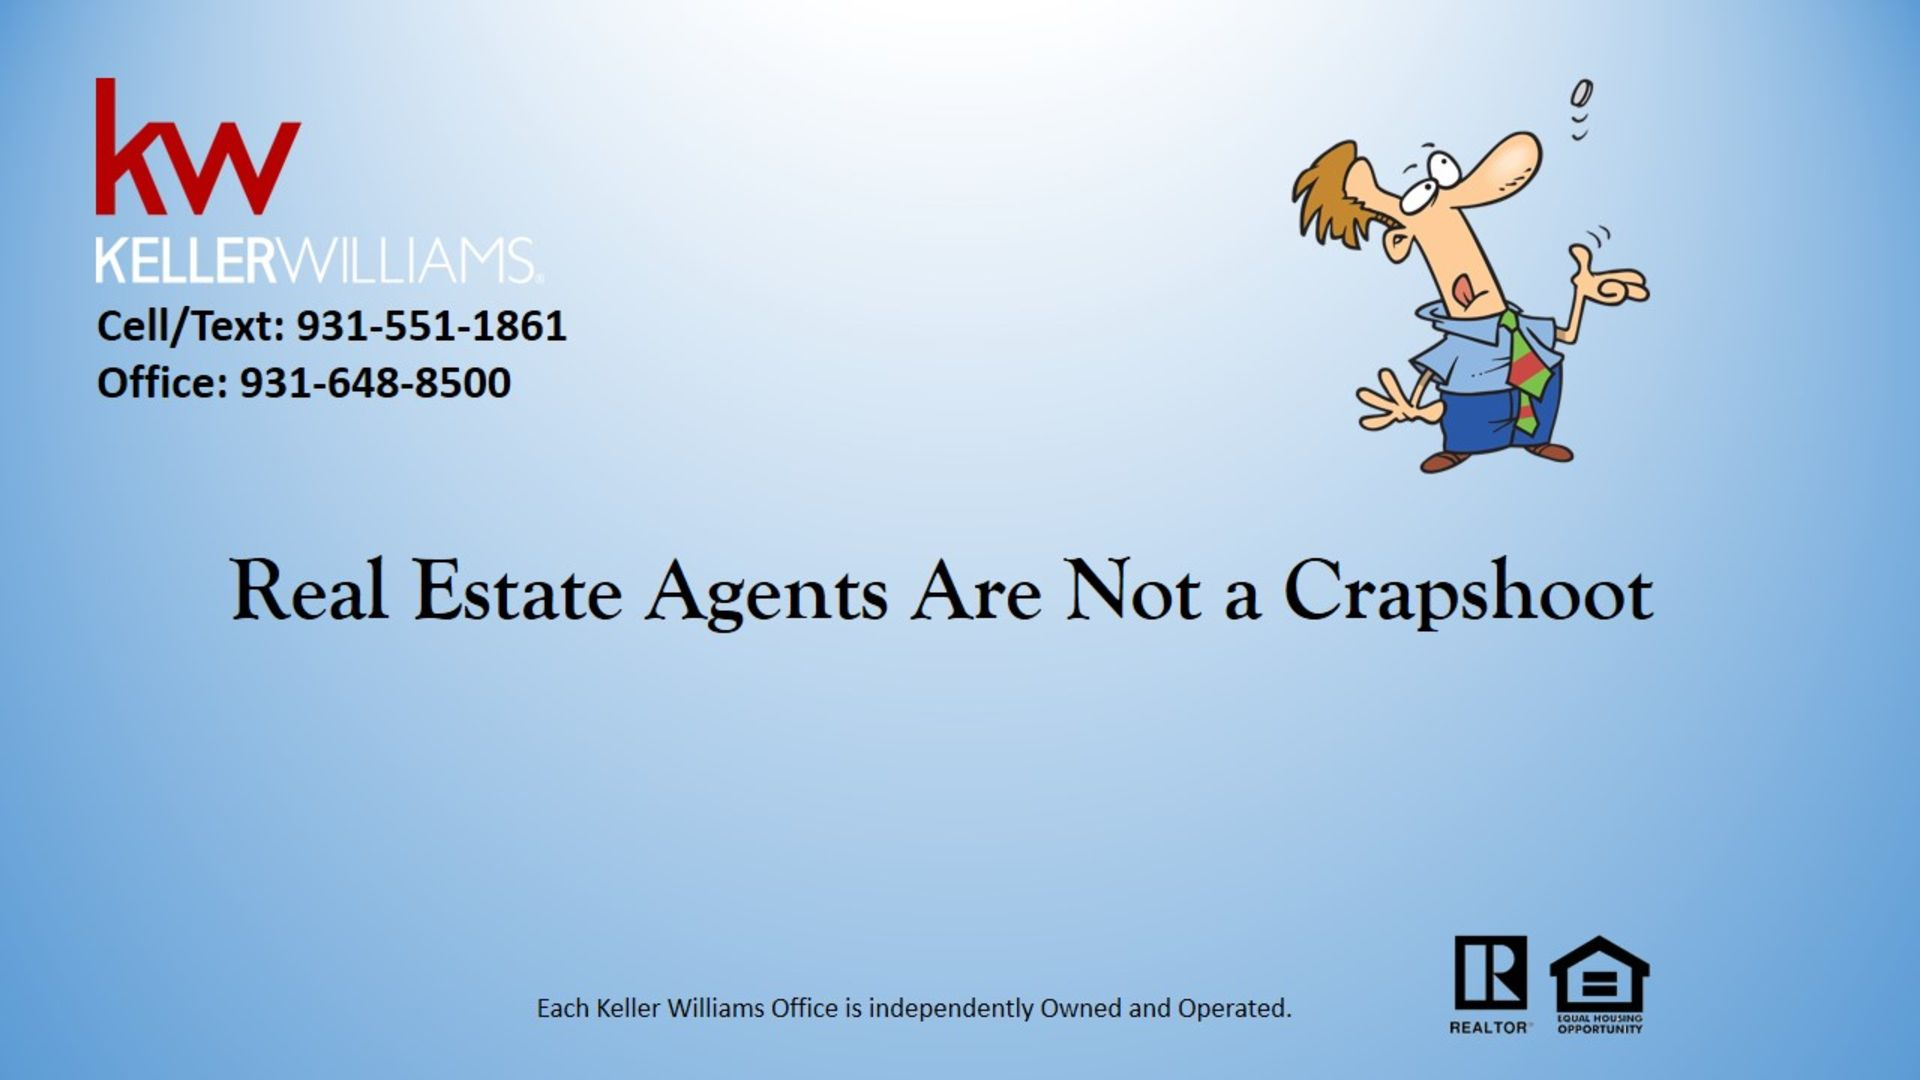 Real Estate Agents Are Not a Crapshoot